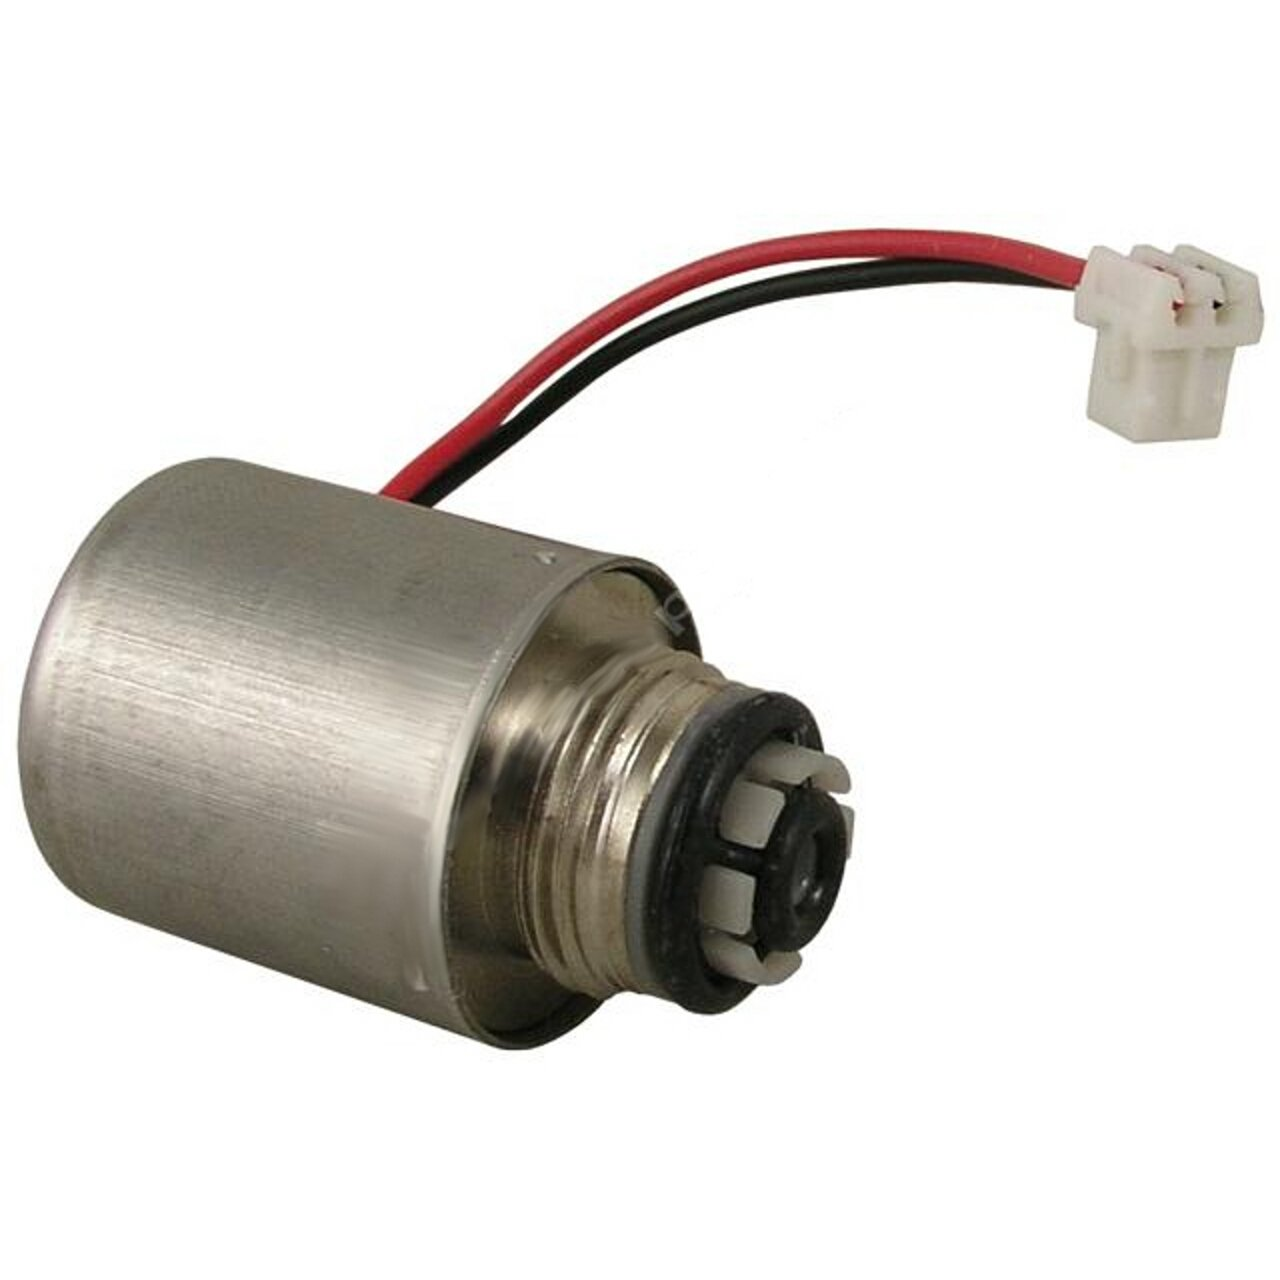 Sloan 3325453 EBV-136-A G2 Flush Valve Solenoid Replacement Part by Sloan